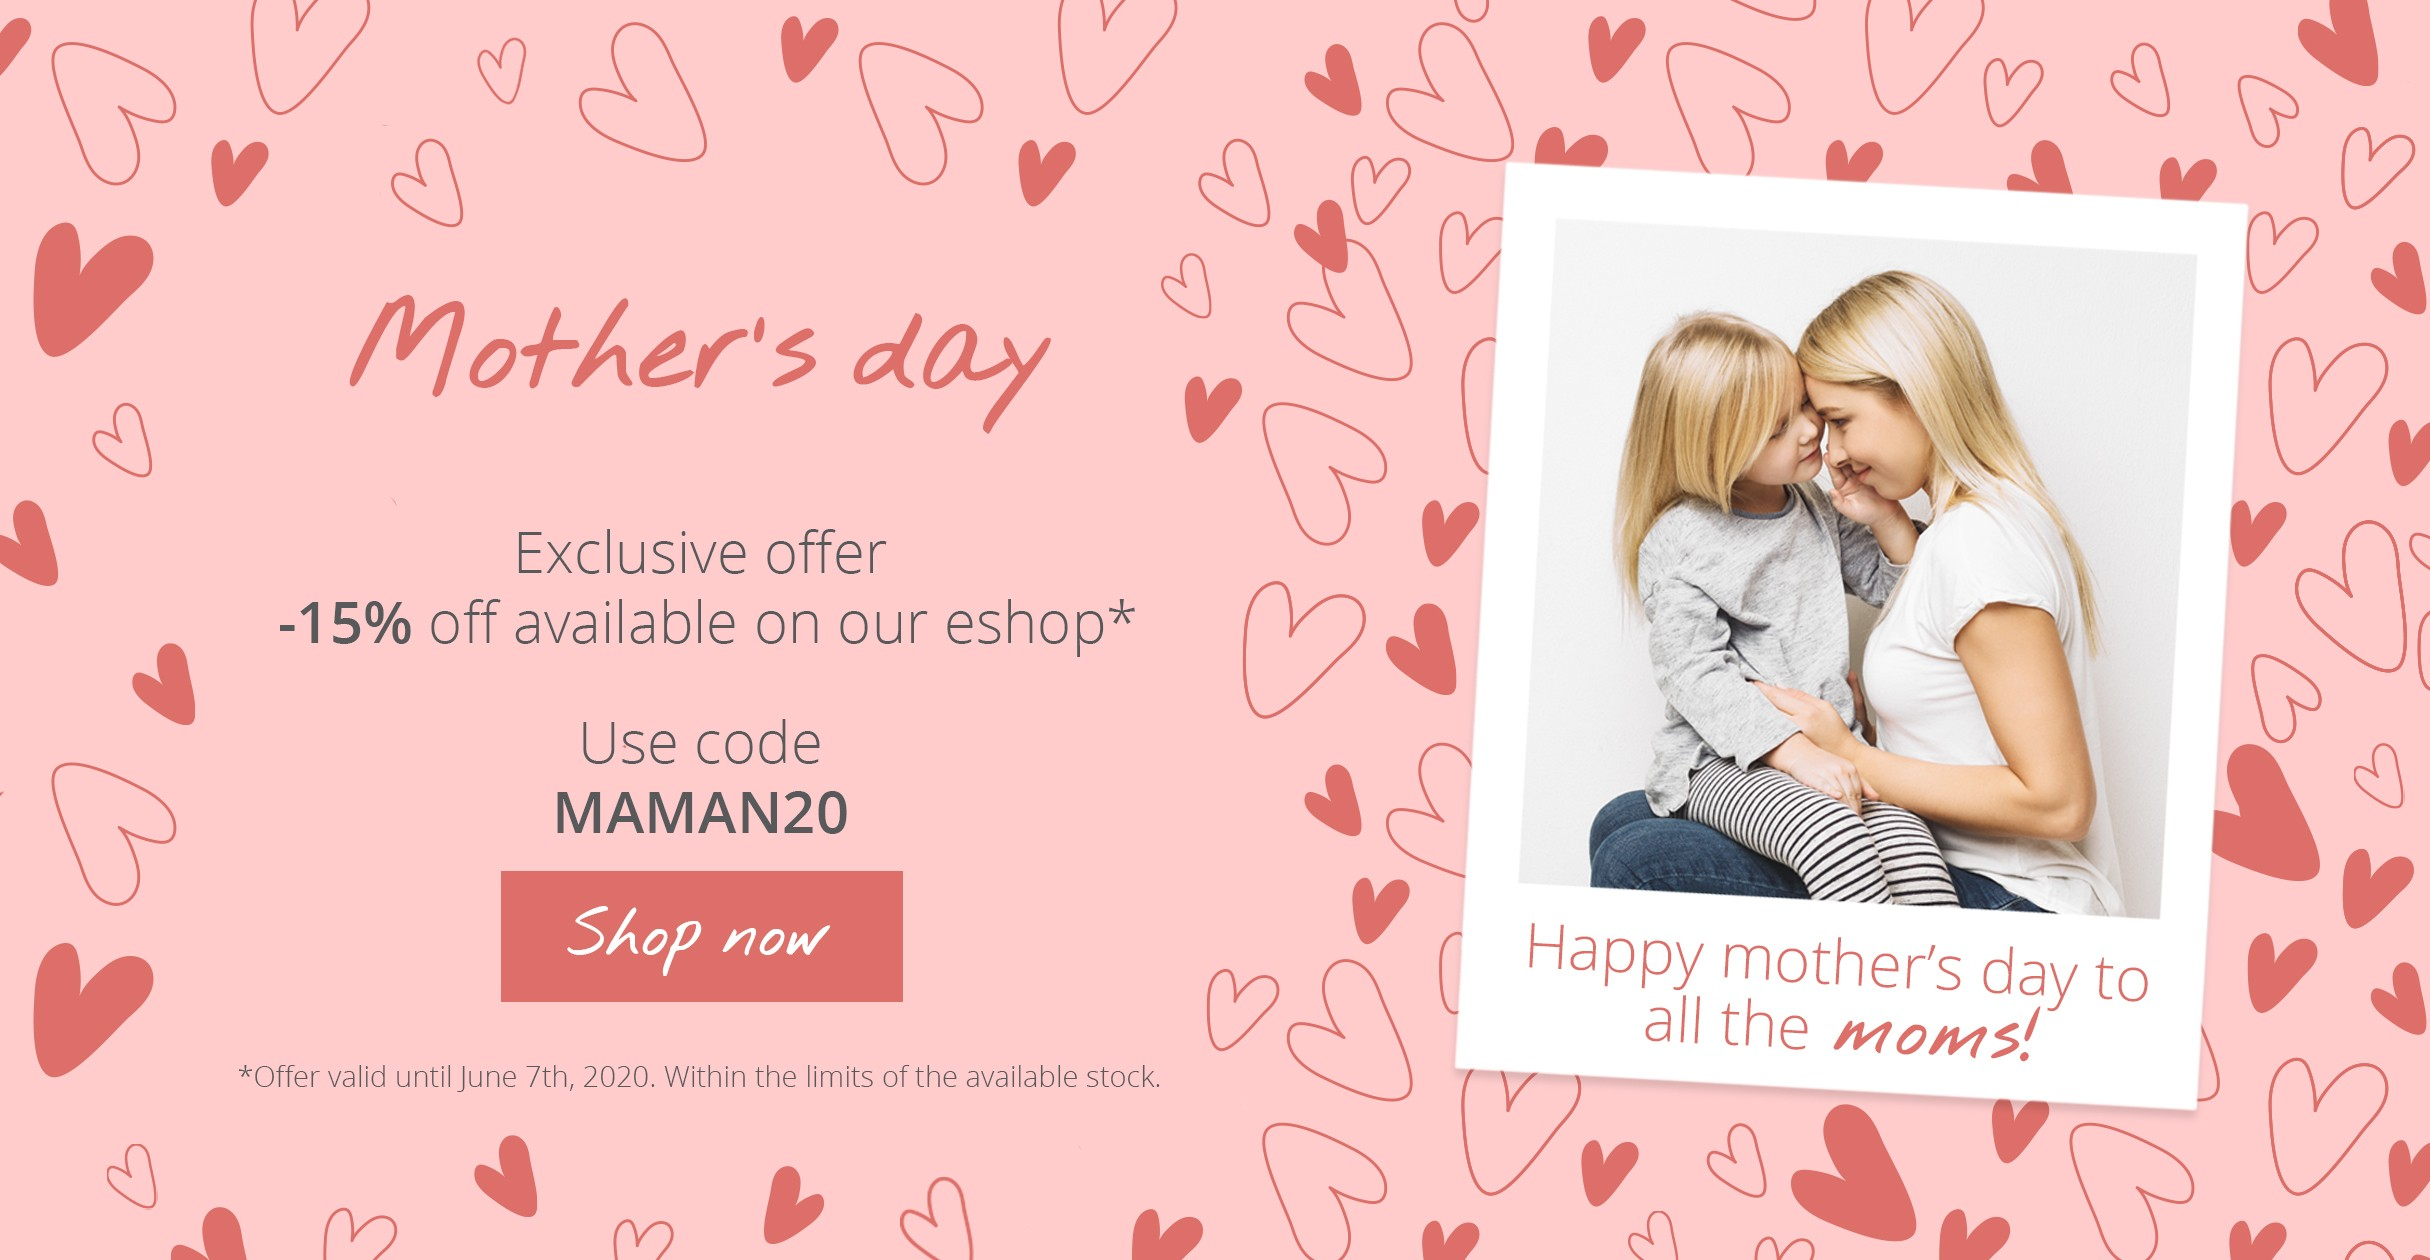 Discount - Mother's day